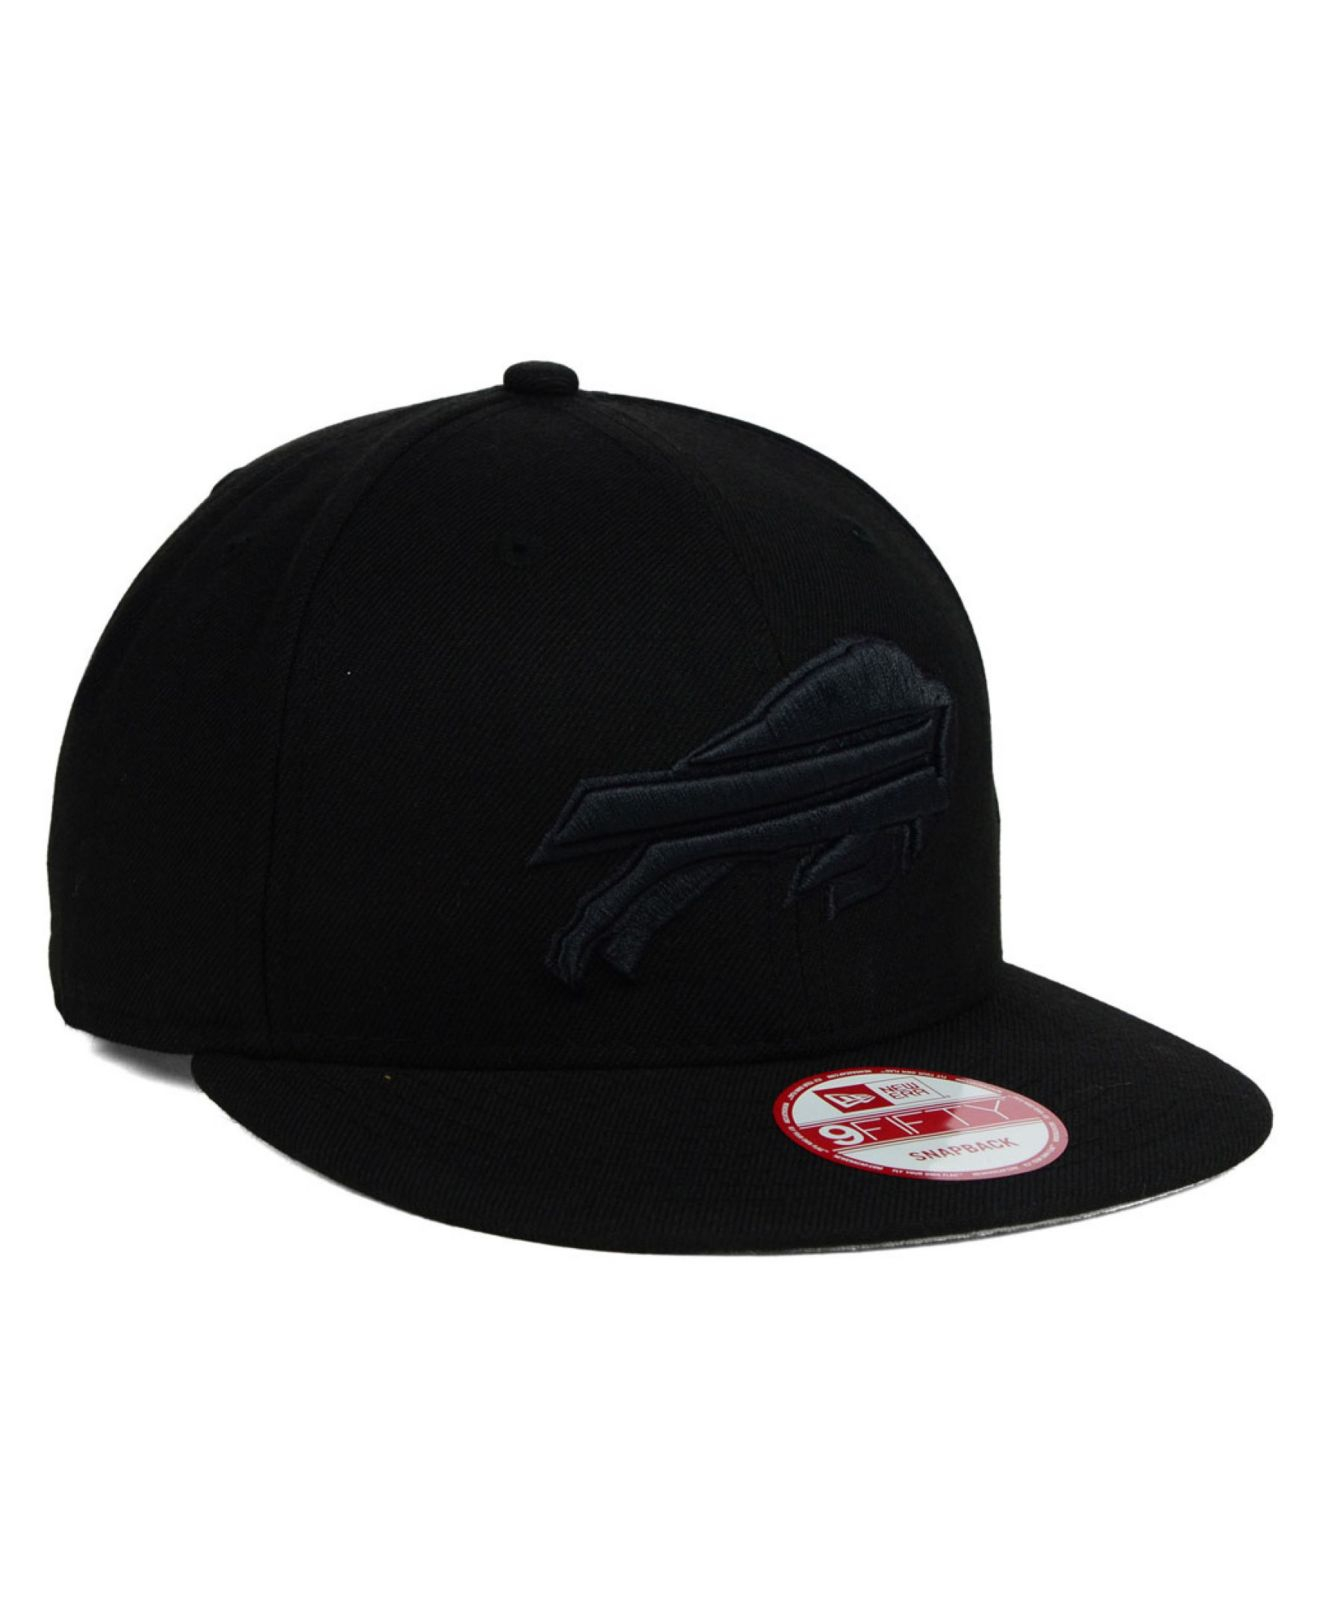 huge selection of b4bdb 8f6bd ... discount lyst ktz buffalo bills black on black 9fifty snapback cap in  black 5c1b7 38d1e